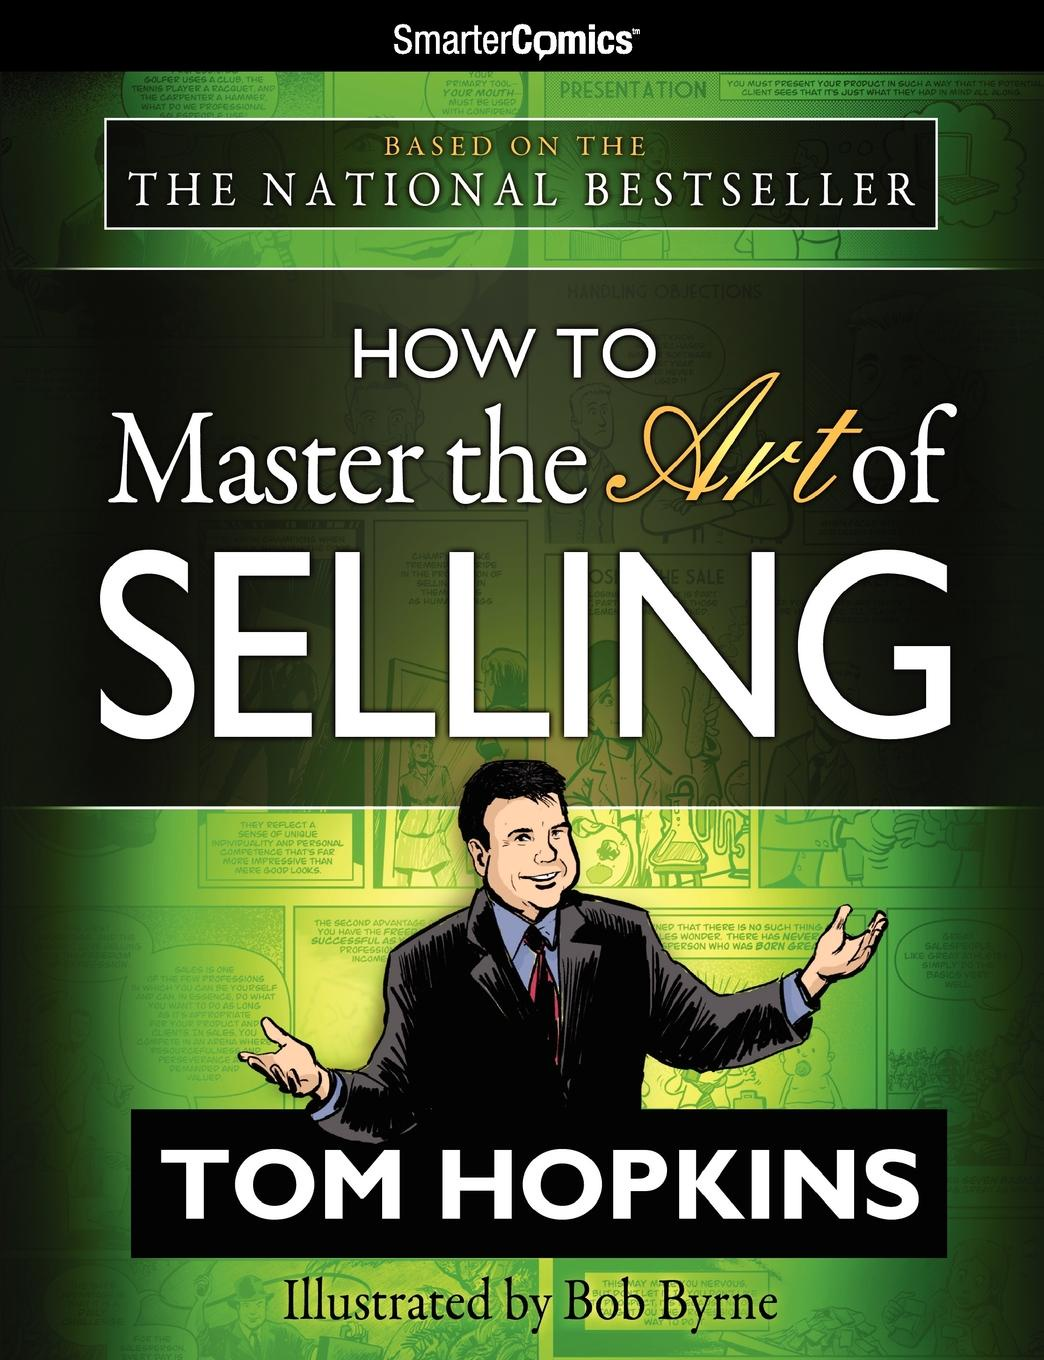 Tom Hopkins How to Master the Art of Selling from SmarterComics mark roberge the sales acceleration formula using data technology and inbound selling to go from $0 to $100 million